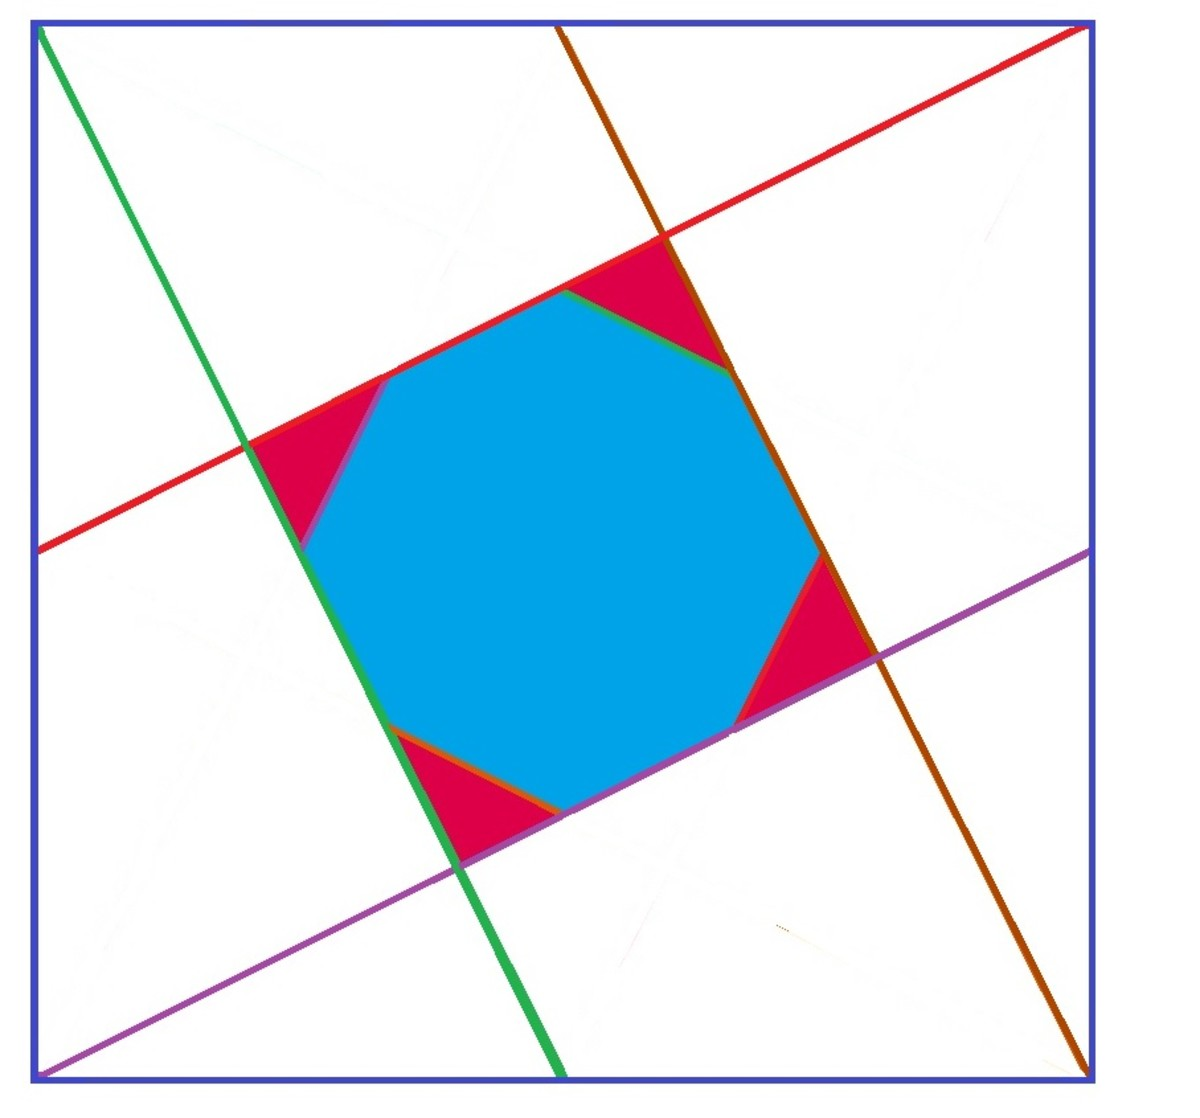 how to find the area of each regular polygon